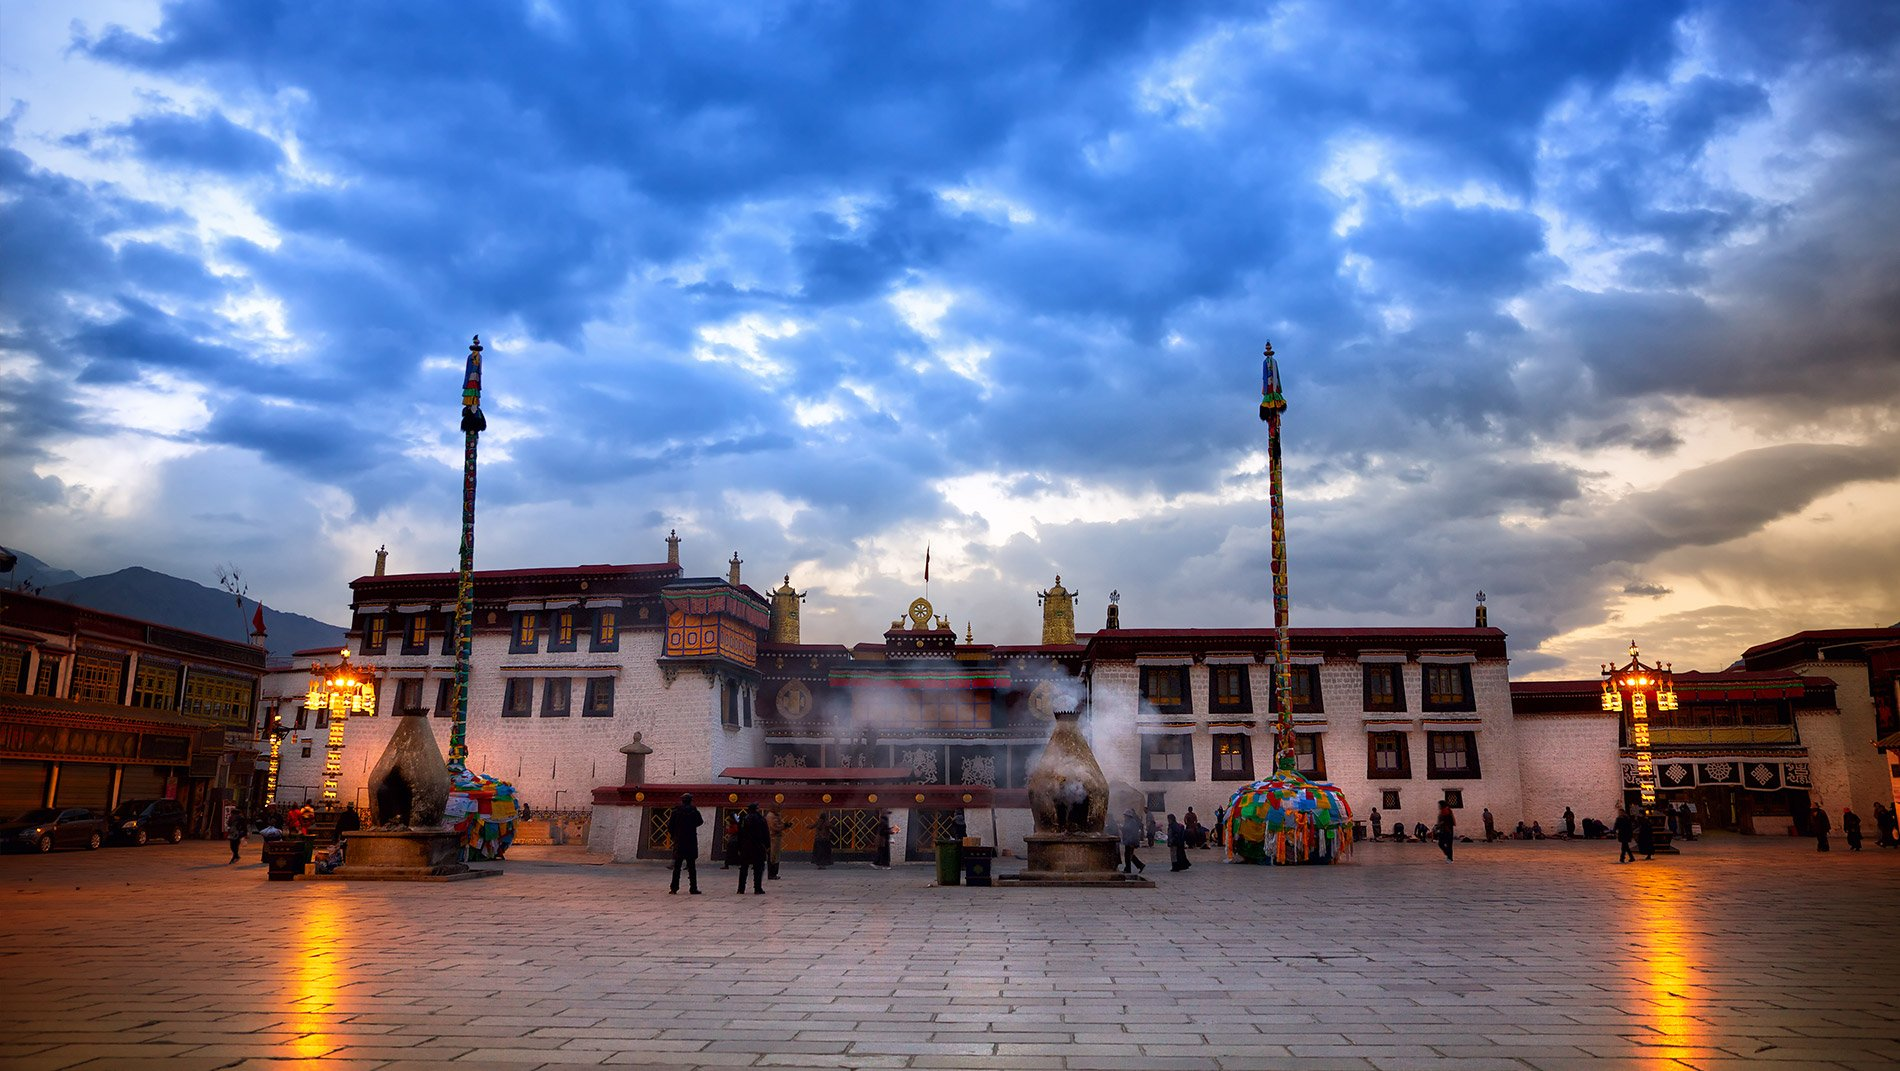 Jokhang Temple~The Jowo statue, Tibetan Buddhism's holiest, is housed in the innermost chapel of the seventh century Jokhang Temple, at the heart of Lhasa.